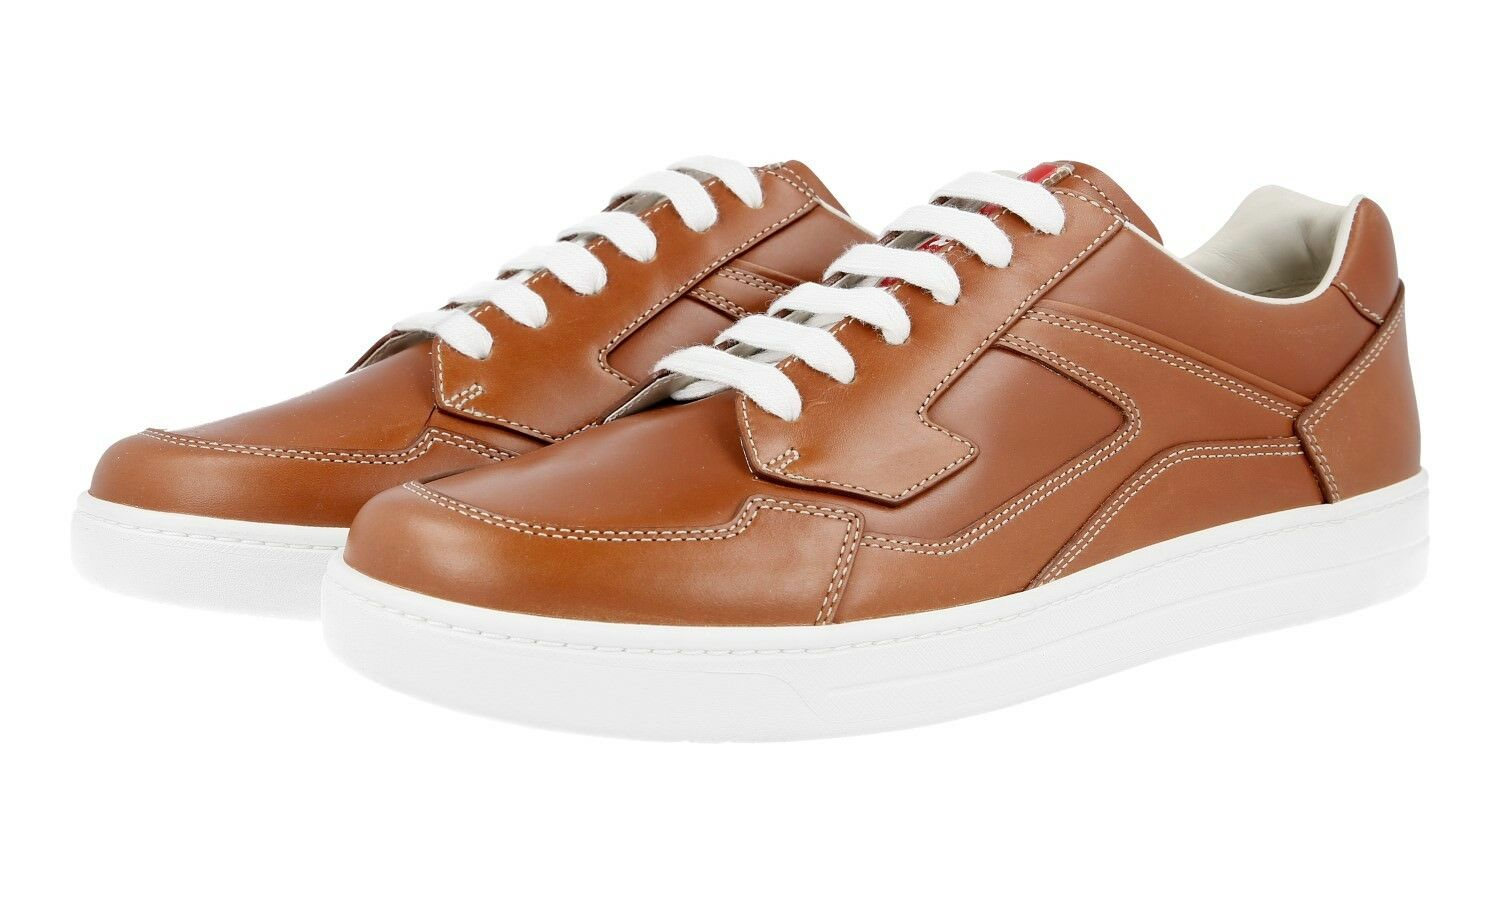 AUTHENTIC LUXURY PRADA SNEAKERS SHOES 4E2797 BROWN NEW 7 41 41,5